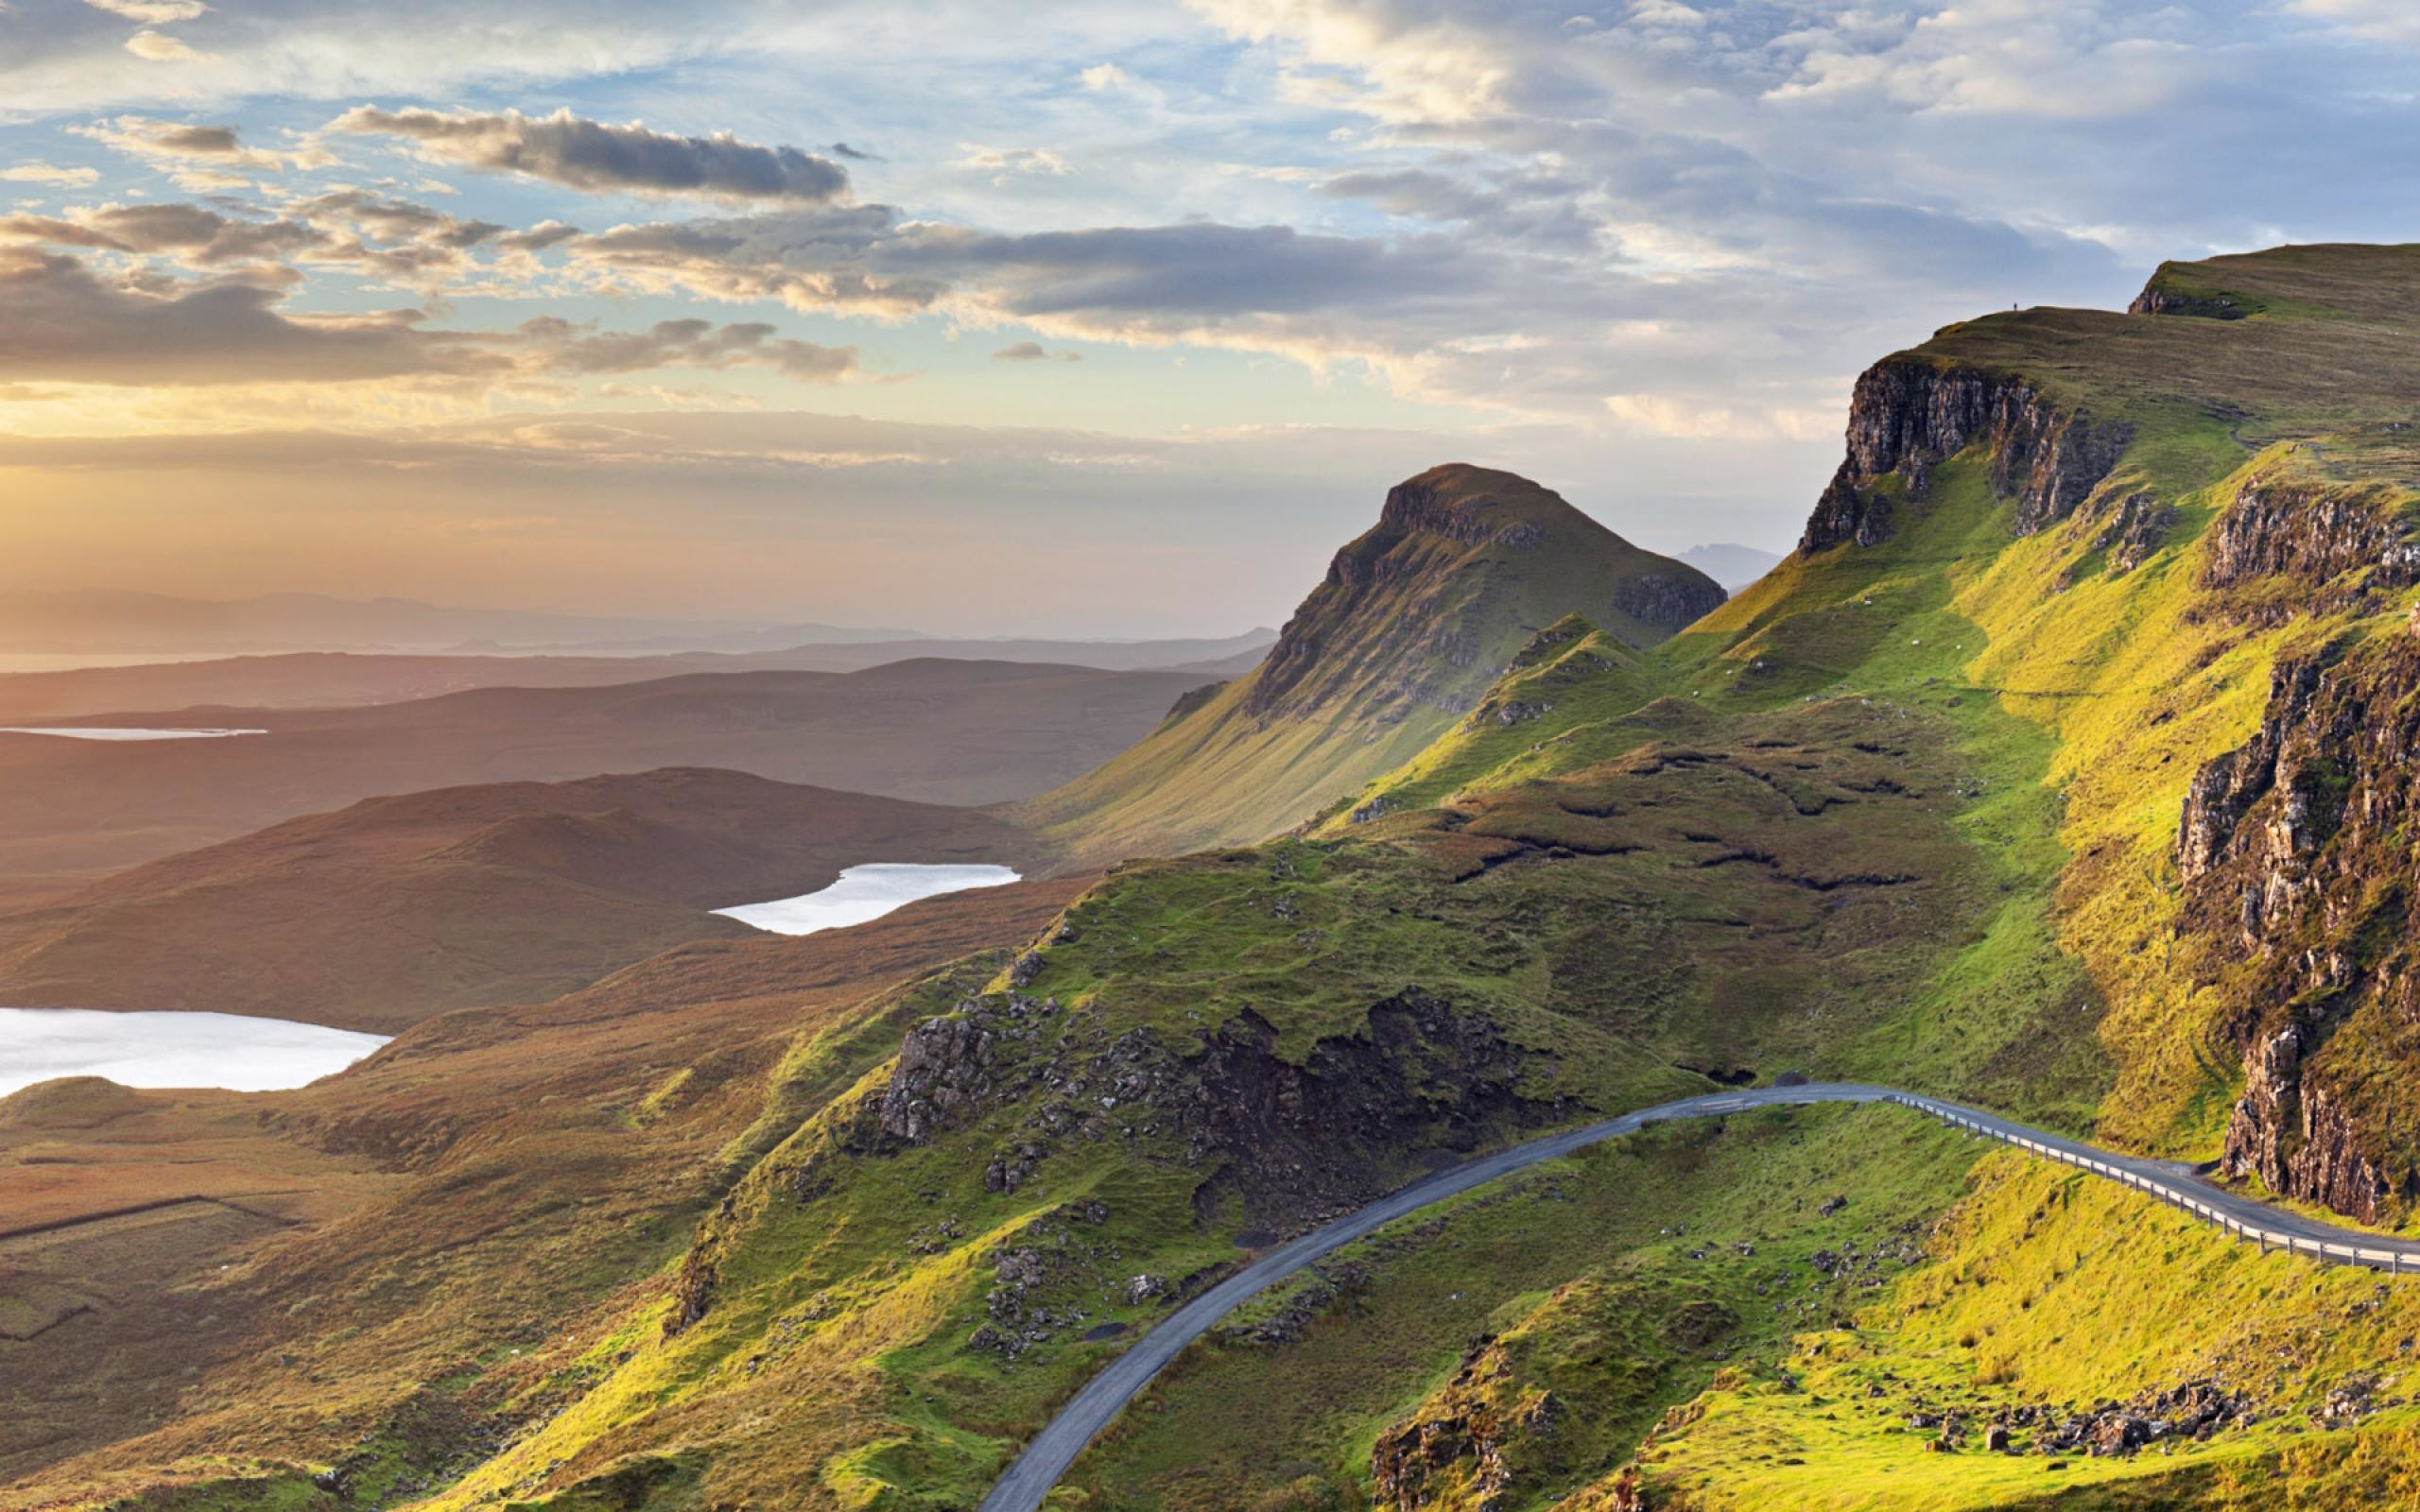 Res: 2560x1600, Scottish Landscape Wallpapers | Best Wallpapers